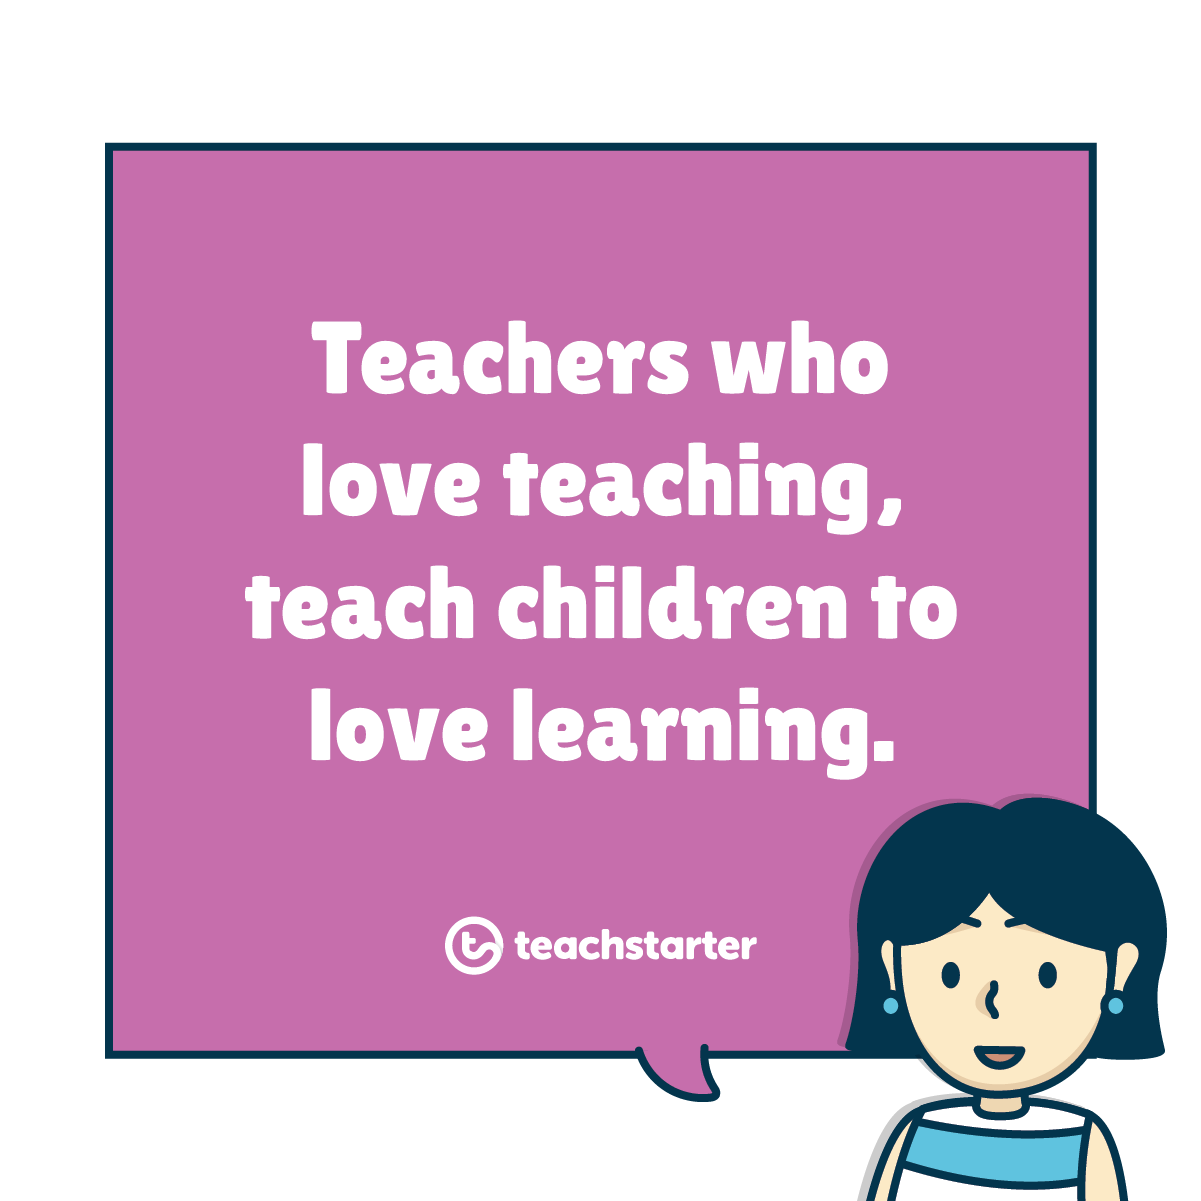 Quotes About Teaching Children 10 Inspirational Quotes for Teachers | Beautiful Teacher Quotes! Quotes About Teaching Children